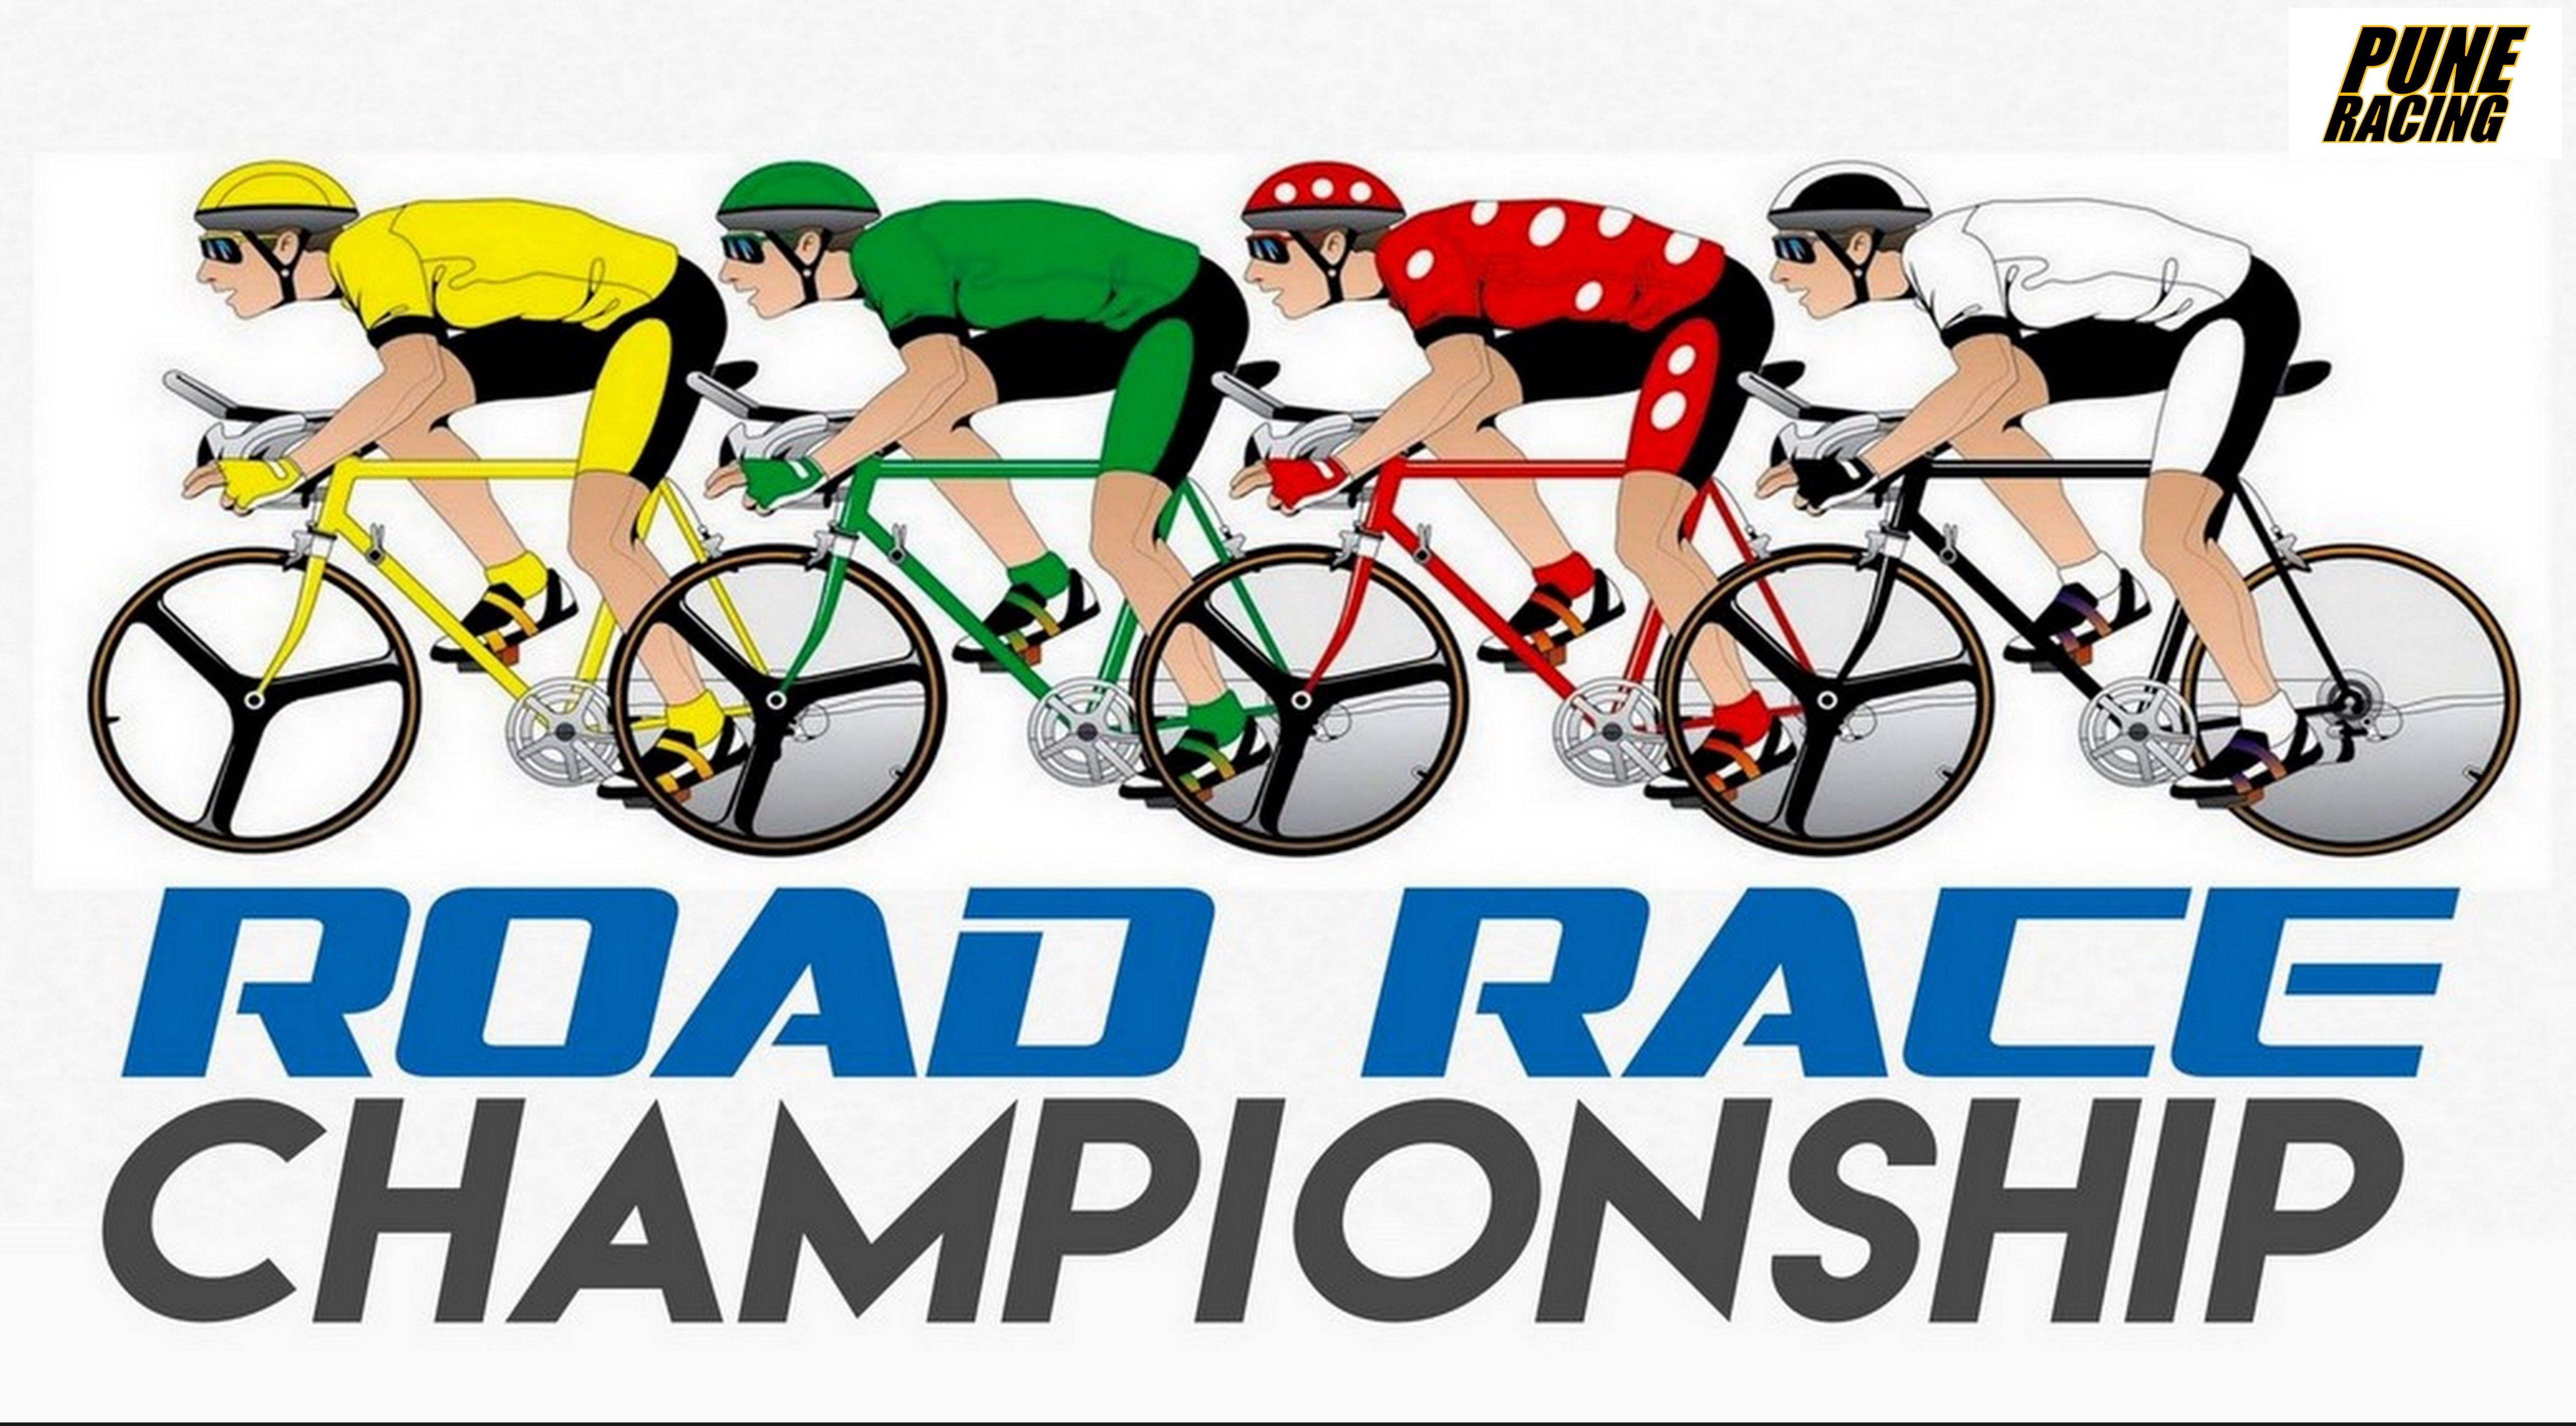 Book Online Tickets for Pune Racing ROAD RACE Championship - Edi, Pune. 